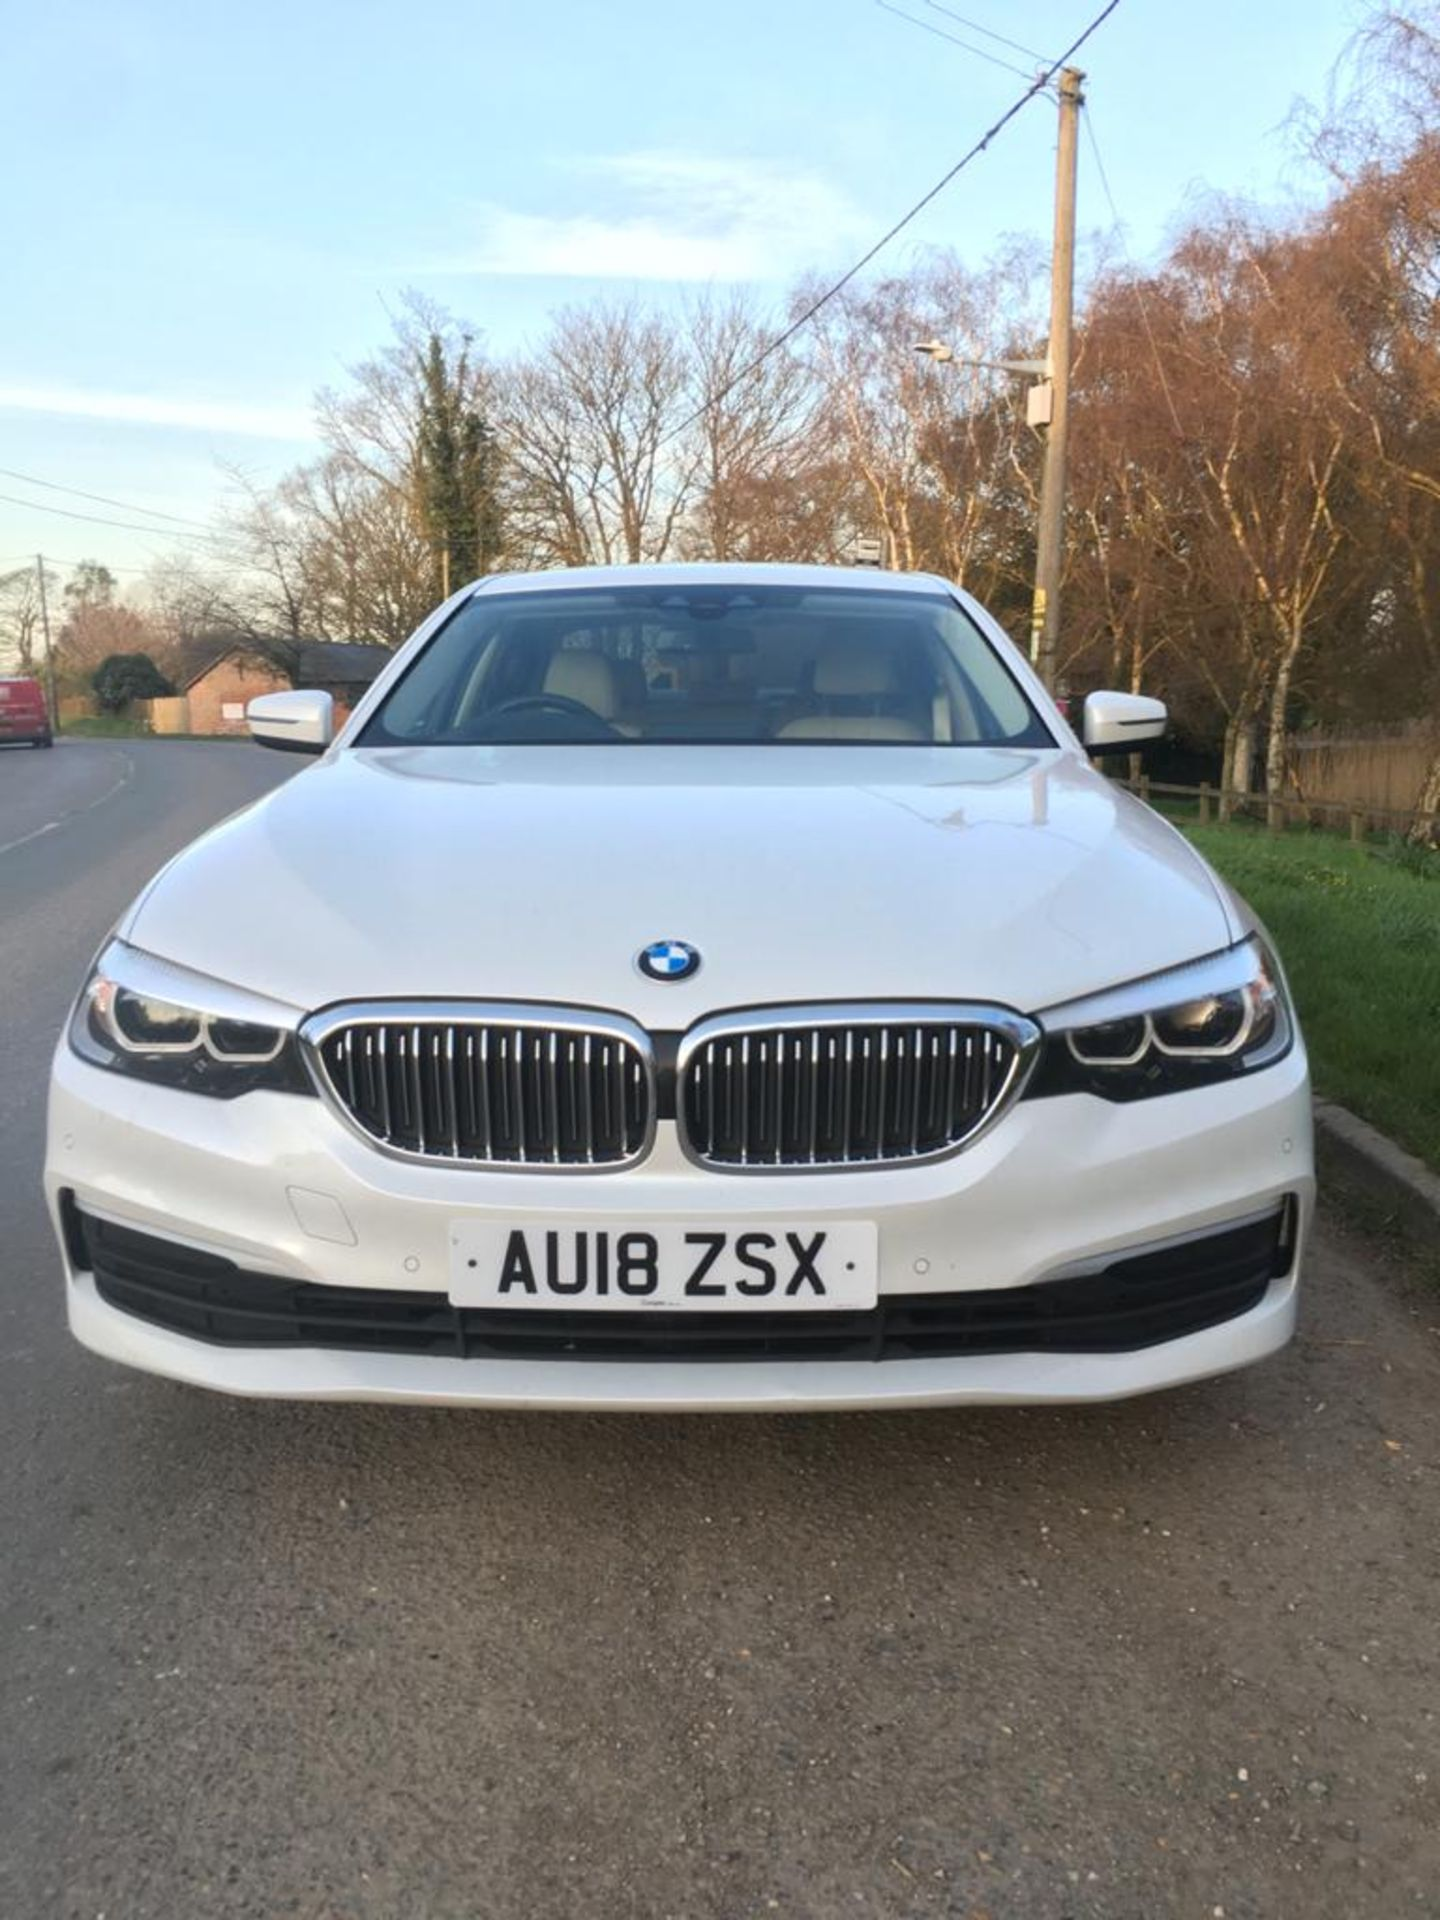 2018 BMW 530E 2.0 SE HYBIRD SALOON AUTOMATIC - Image 3 of 34